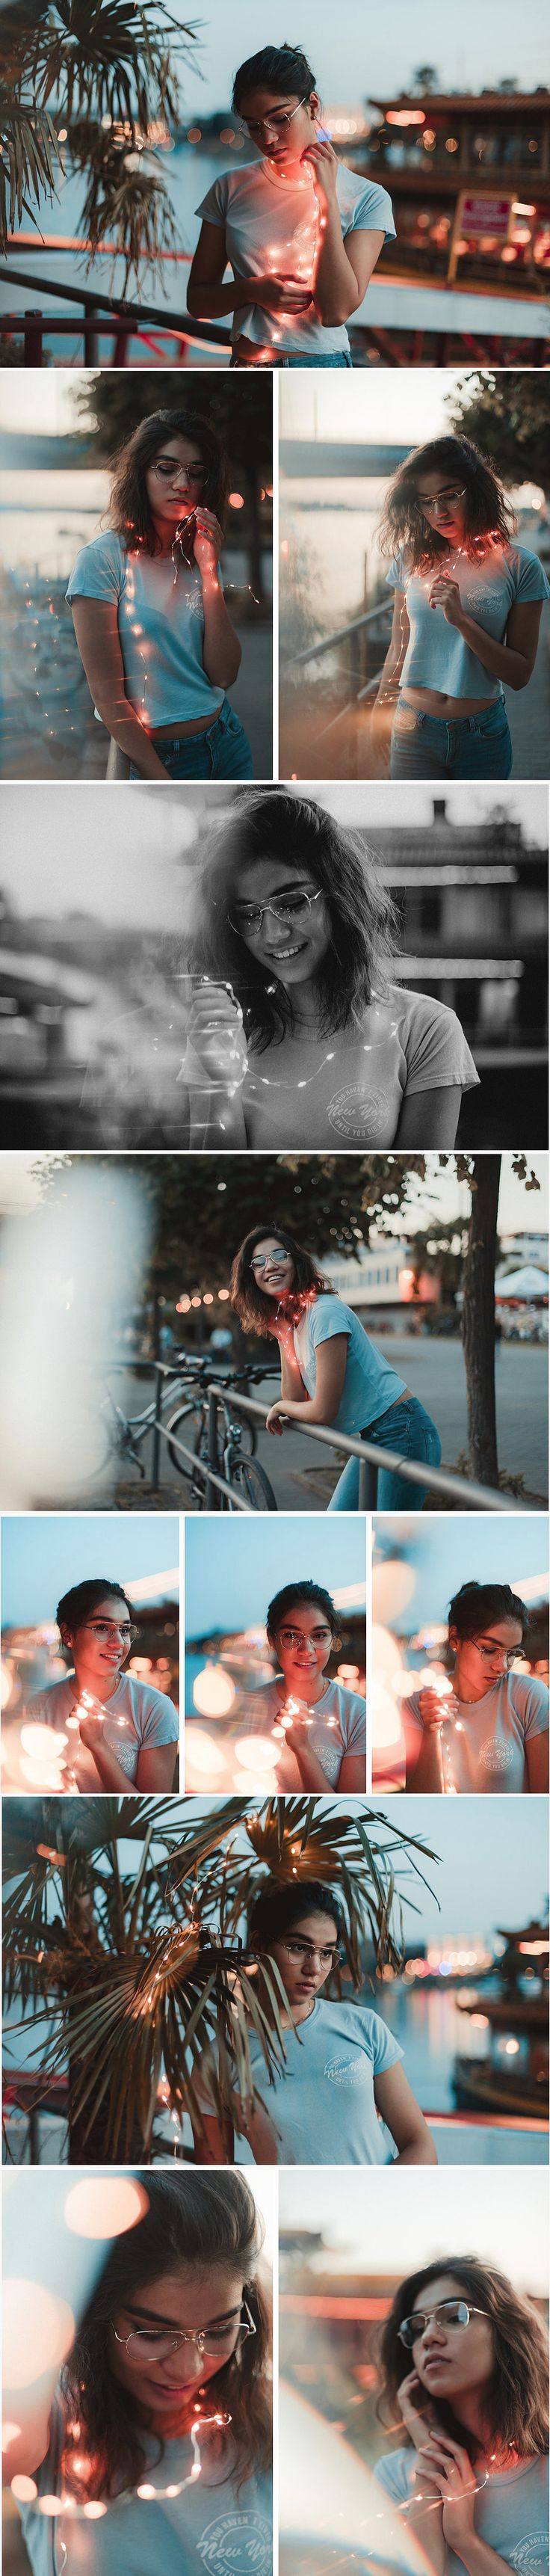 Tropical Dreams. Ein Photoshoot im Brandon Woelfel Style. Portrait Shooting mit Fairylights am Hafen. Fotoshooting Idee, Portrait Foto Idee Lichterkette, Sommer Fotoshooting Idee